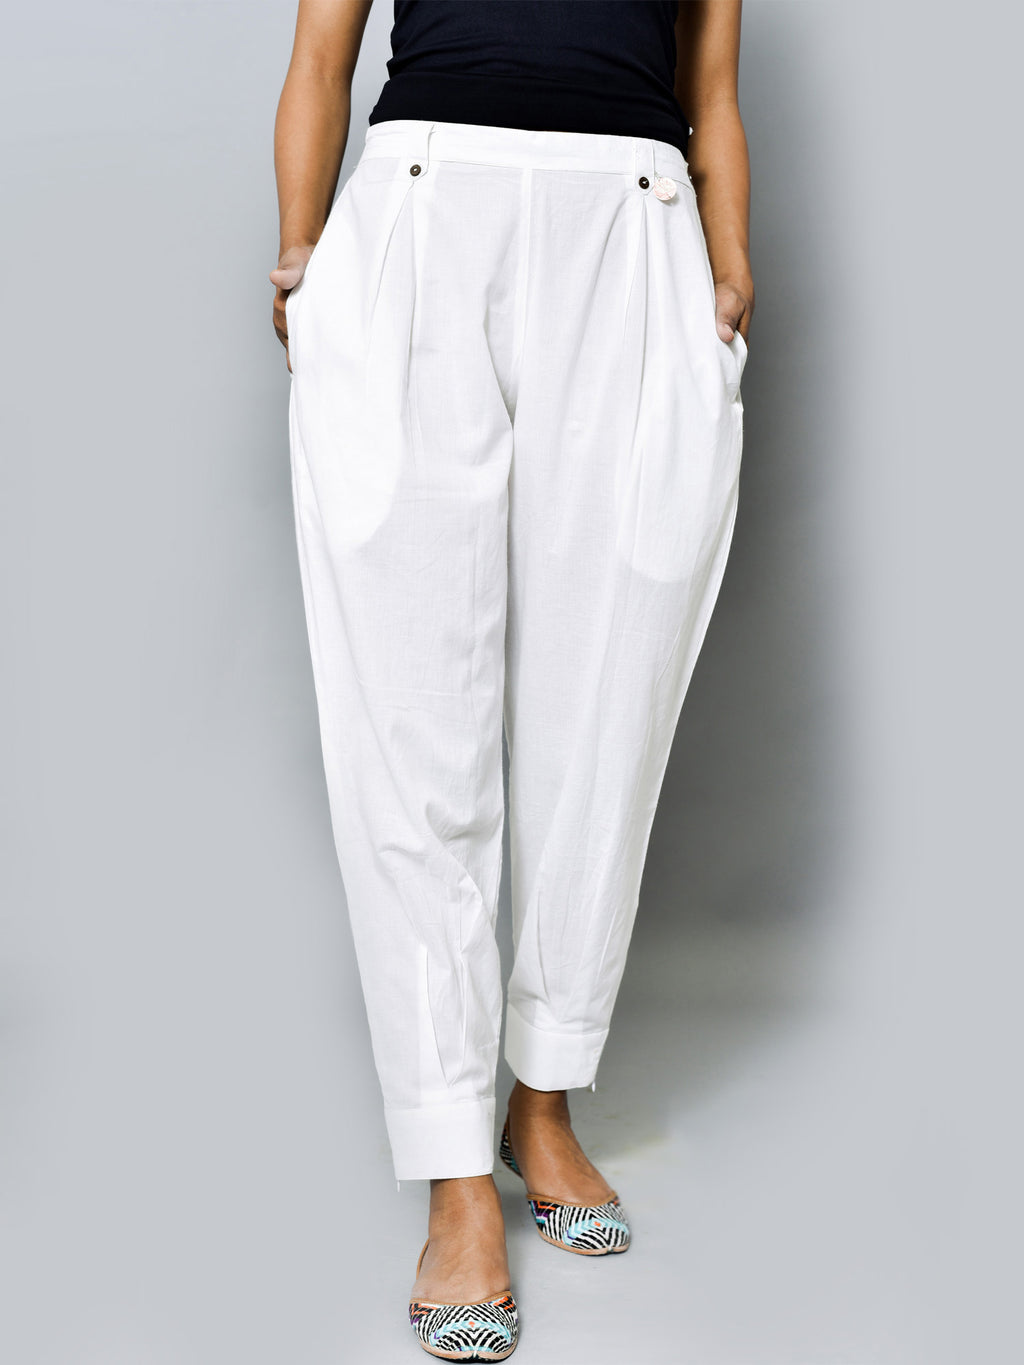 BOX PLEAT PANTS